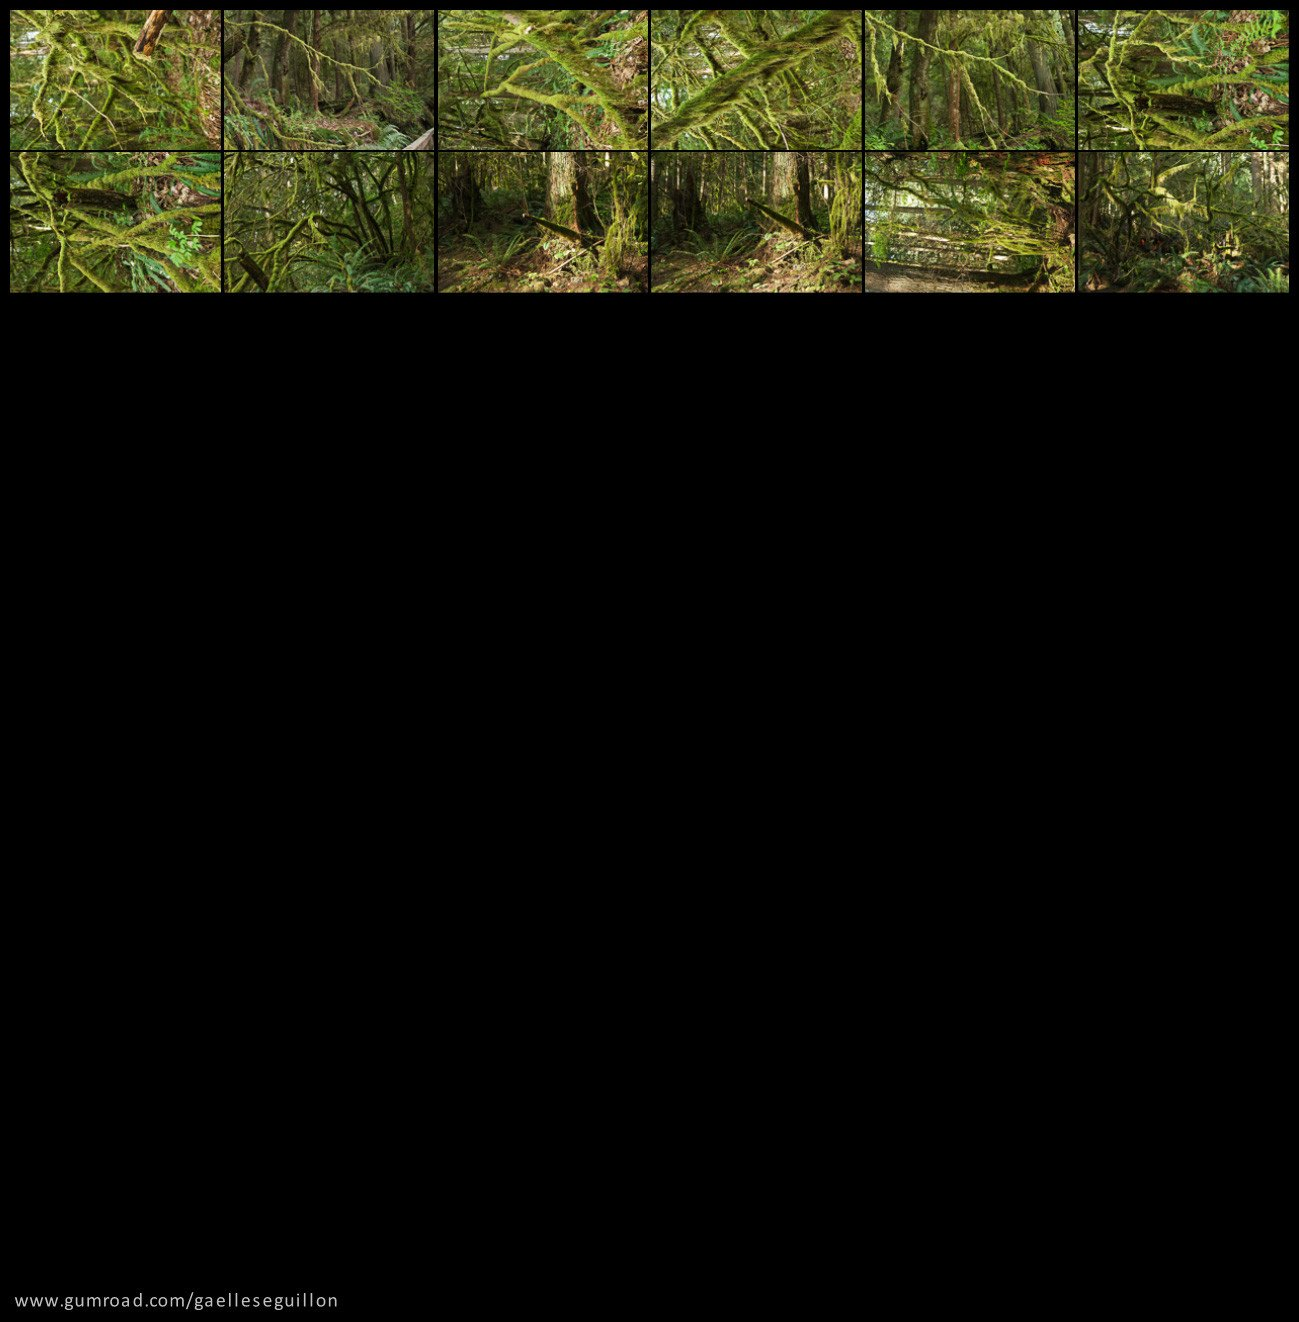 Mossy rainforest preview 5